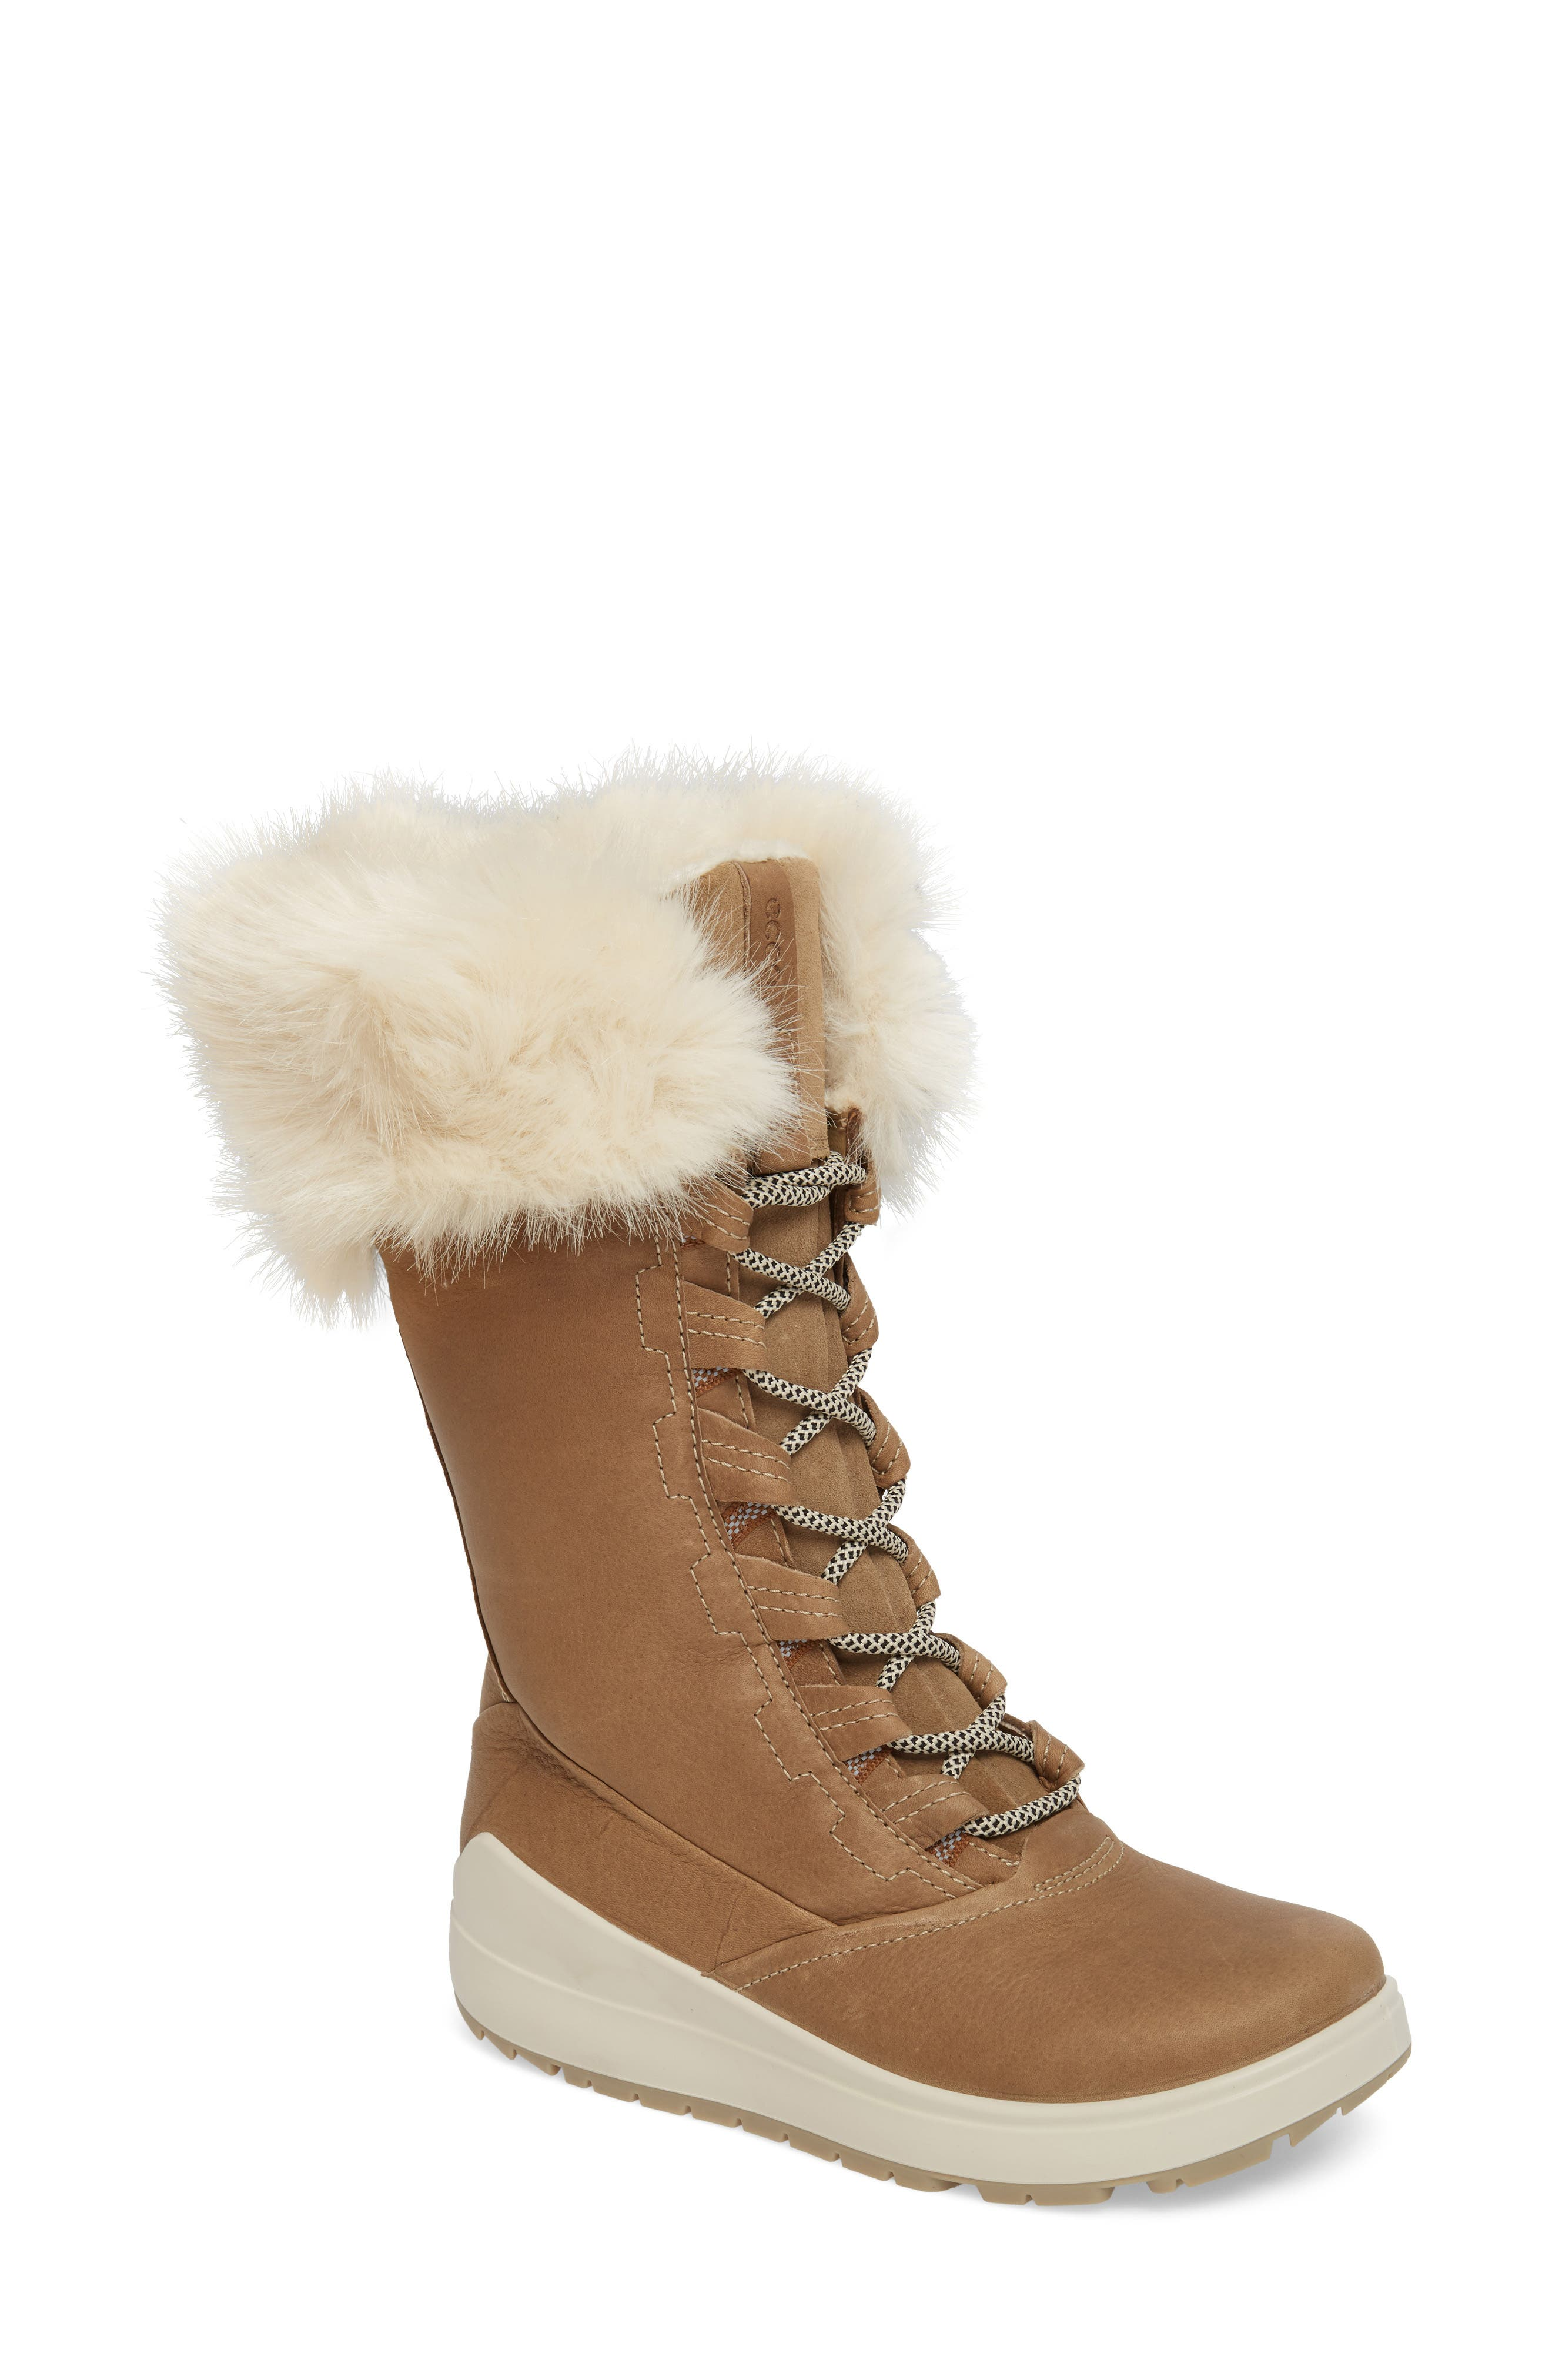 Main Image - ECCO Noyce Siberia Hydromax Water Resistant Winter Boot with Faux Fur Trim (Women)